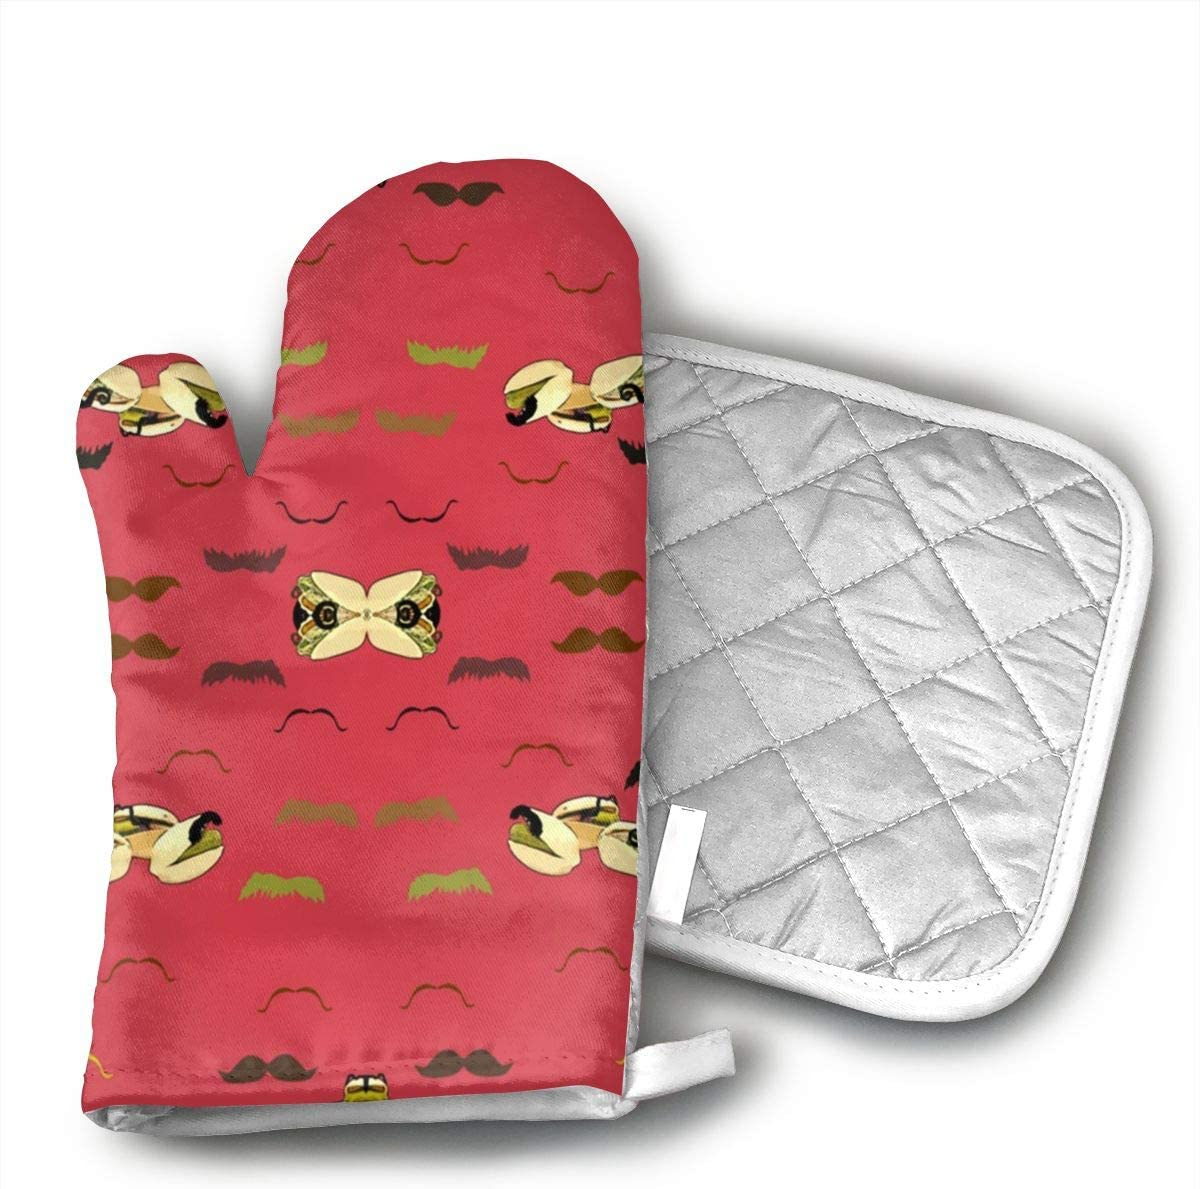 Sjiwqoj8 Pistachios with Mustachios Kitchen Oven Mitts,Oven Mitts and Pot Holders,Heat Resistant with Quilted Cotton Lining,Cooking,Baking,Grilling,Barbecue